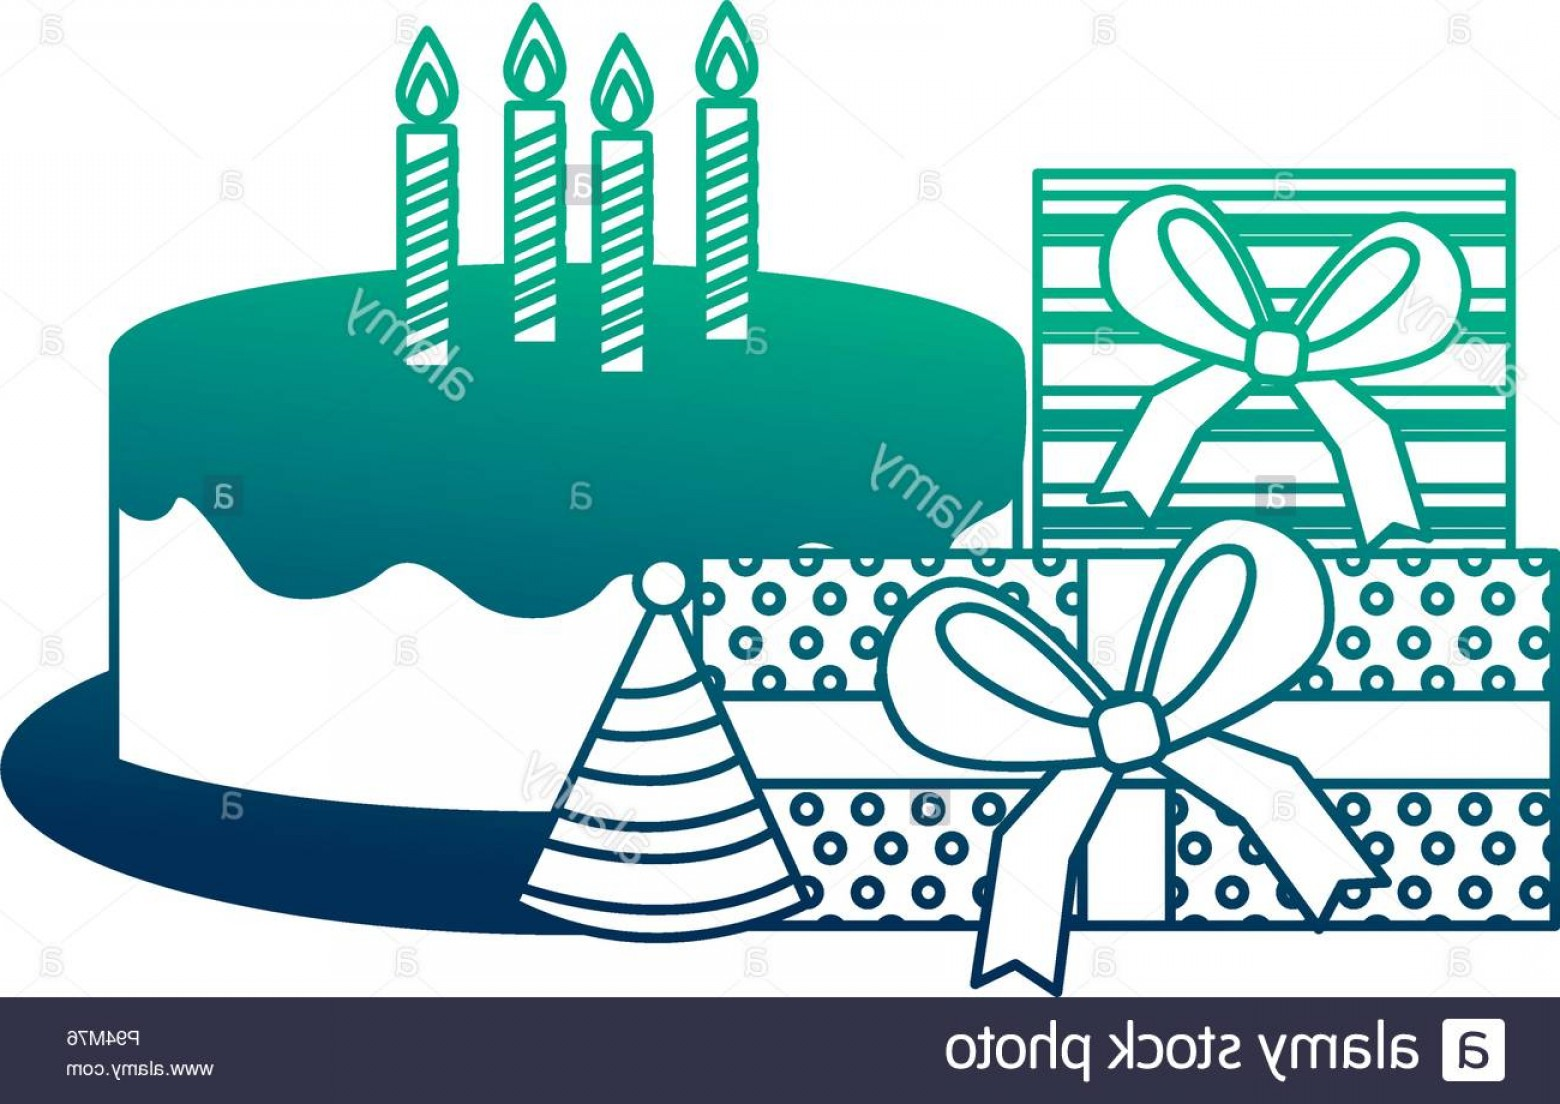 Teal Birthday Hat Vector: Birthday Cake With Candles Gift Boxes Party Hat Vector Illustration Neon Design Image